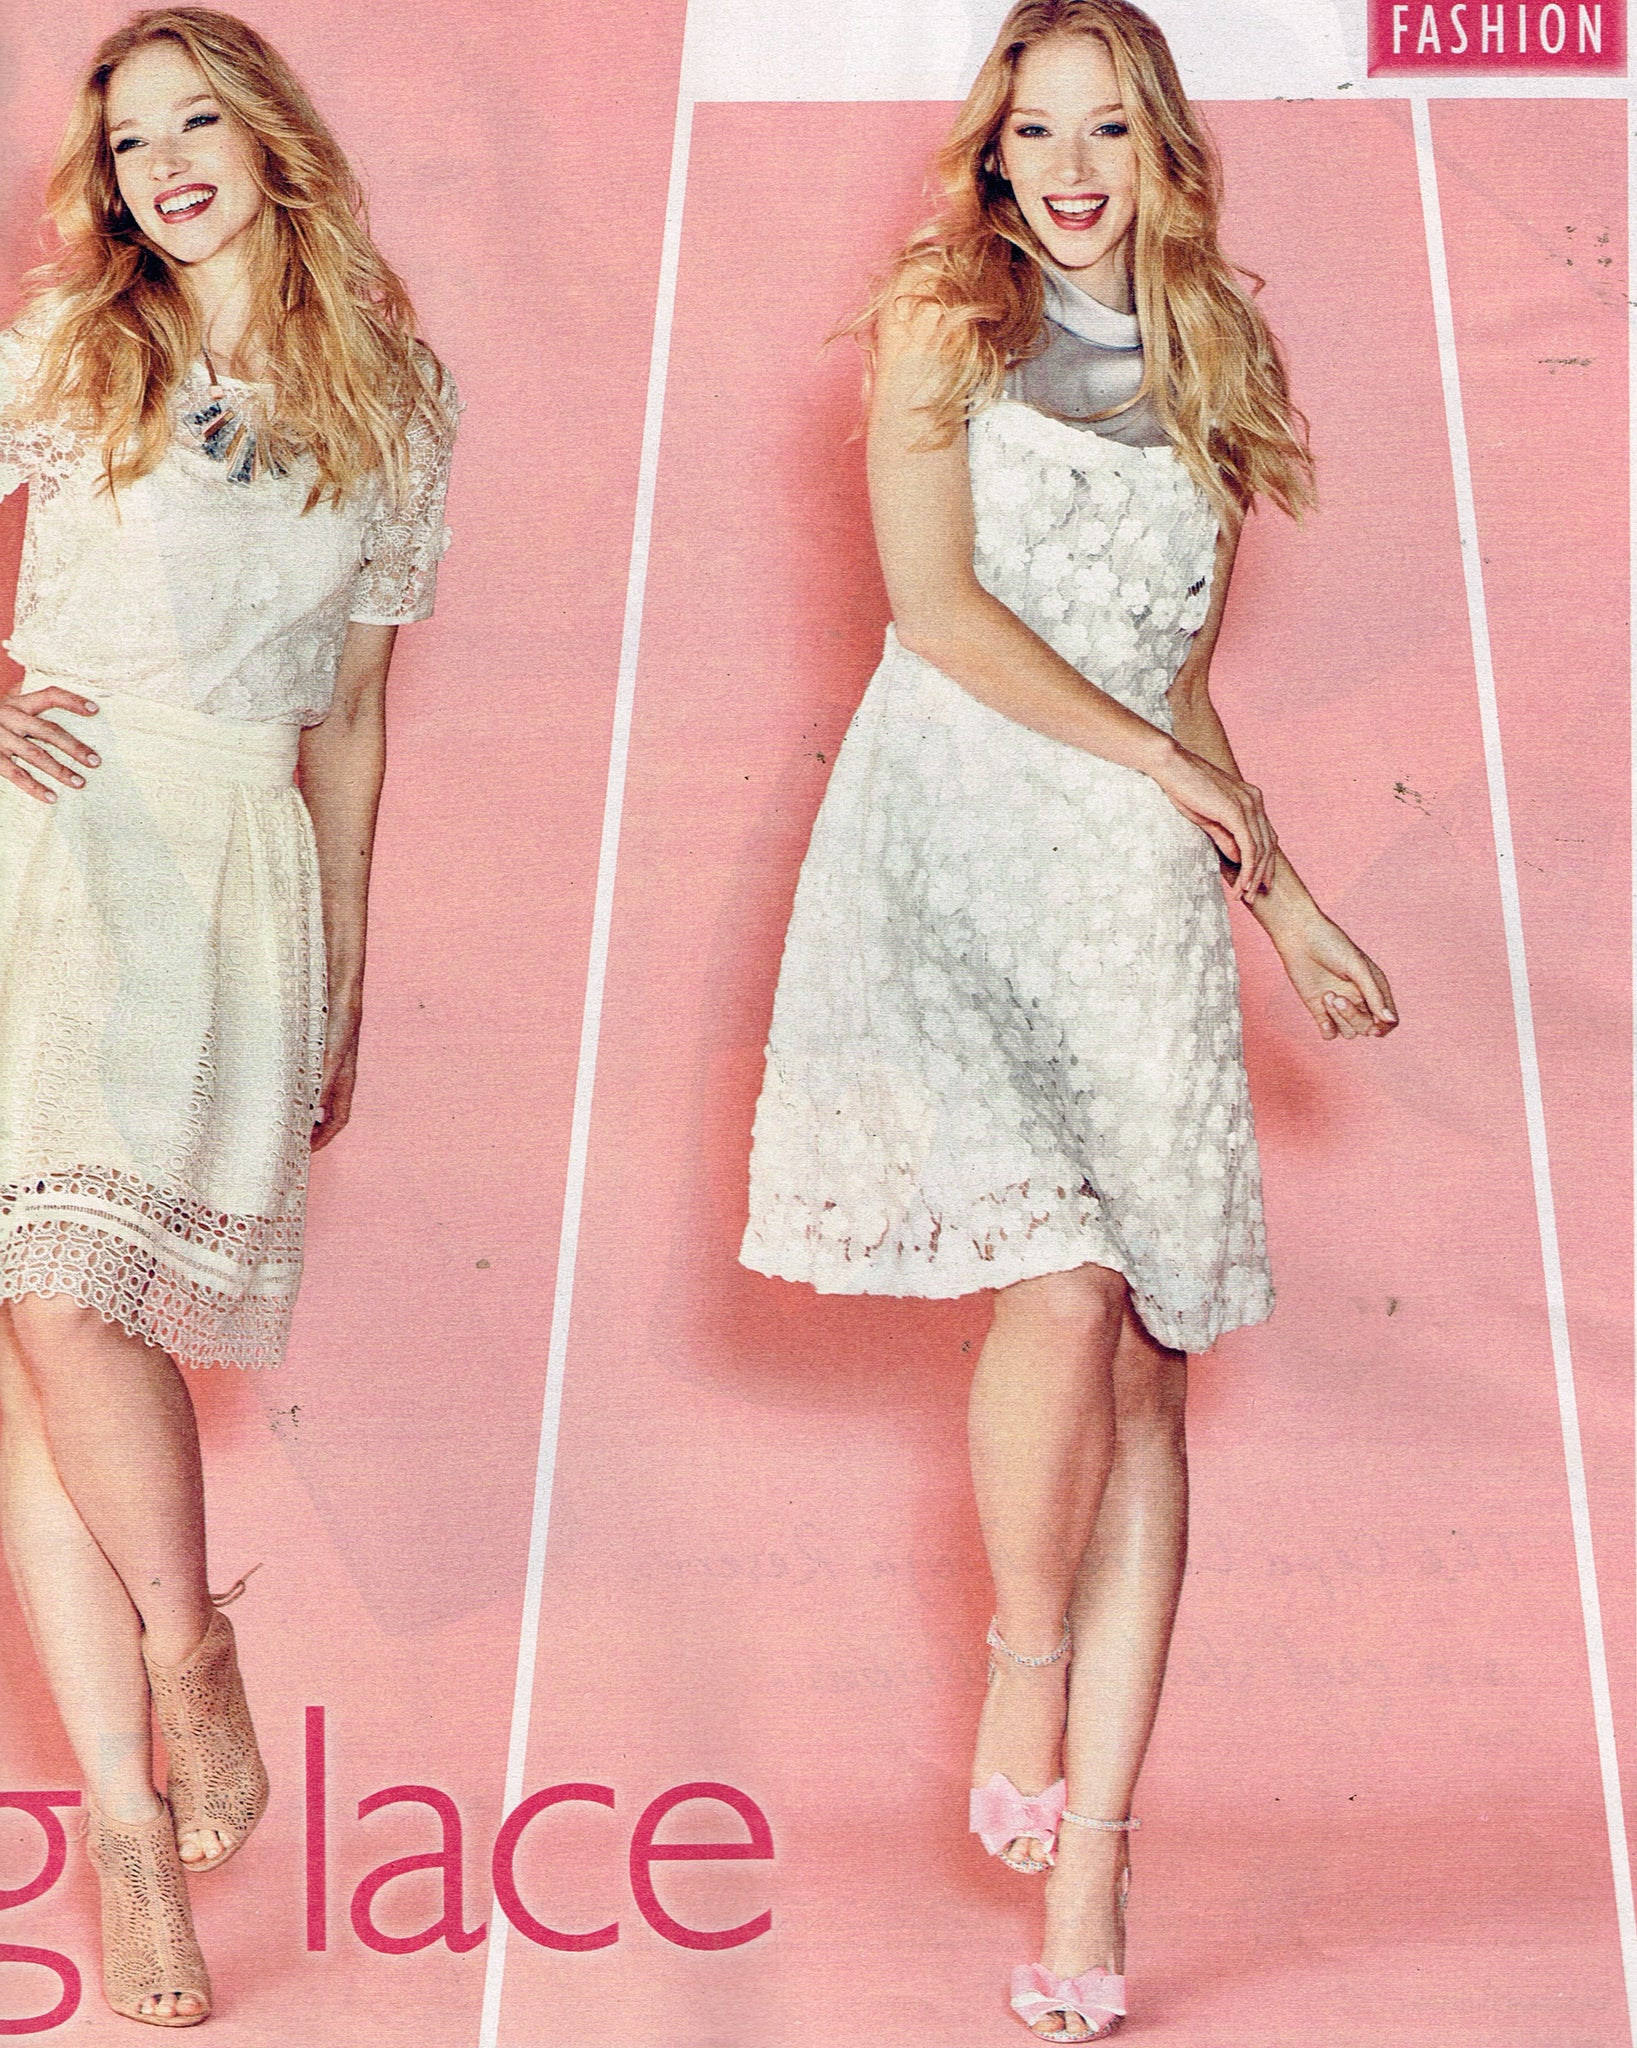 saturday magazine lace dungaree dress ukulele